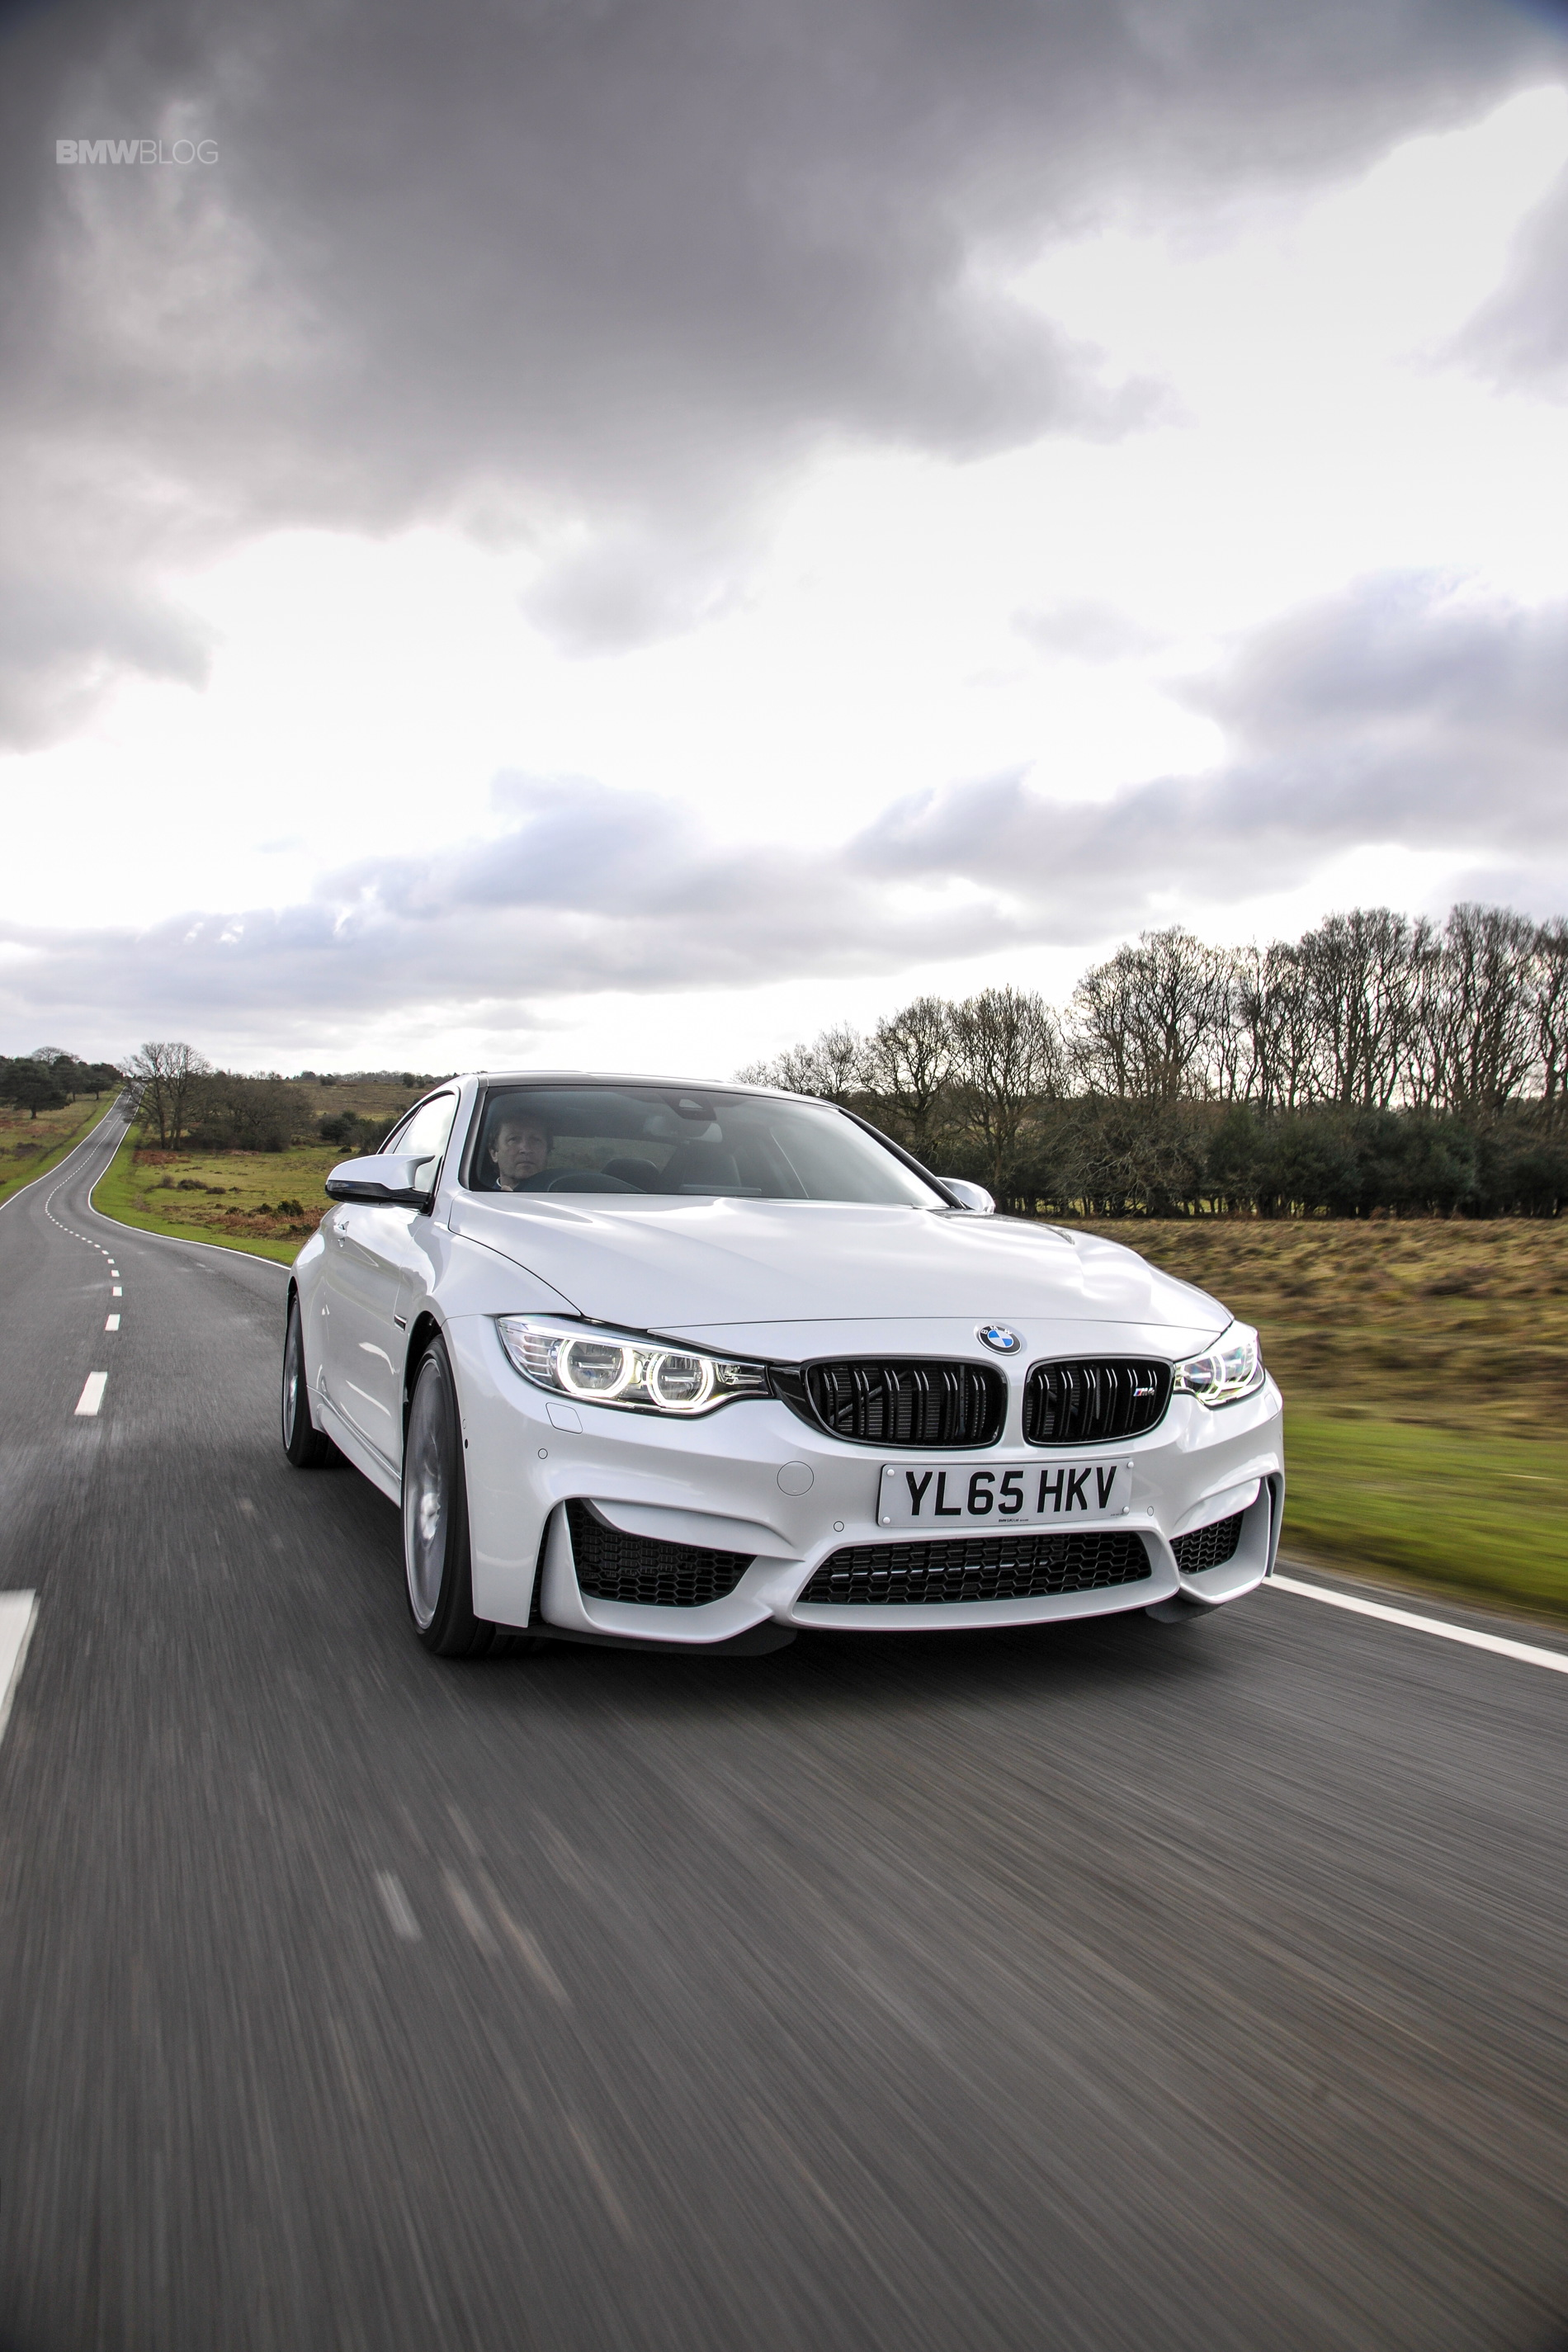 2016 Bmw M4 0 60 : Instrumented, Tests:, Competition, Package